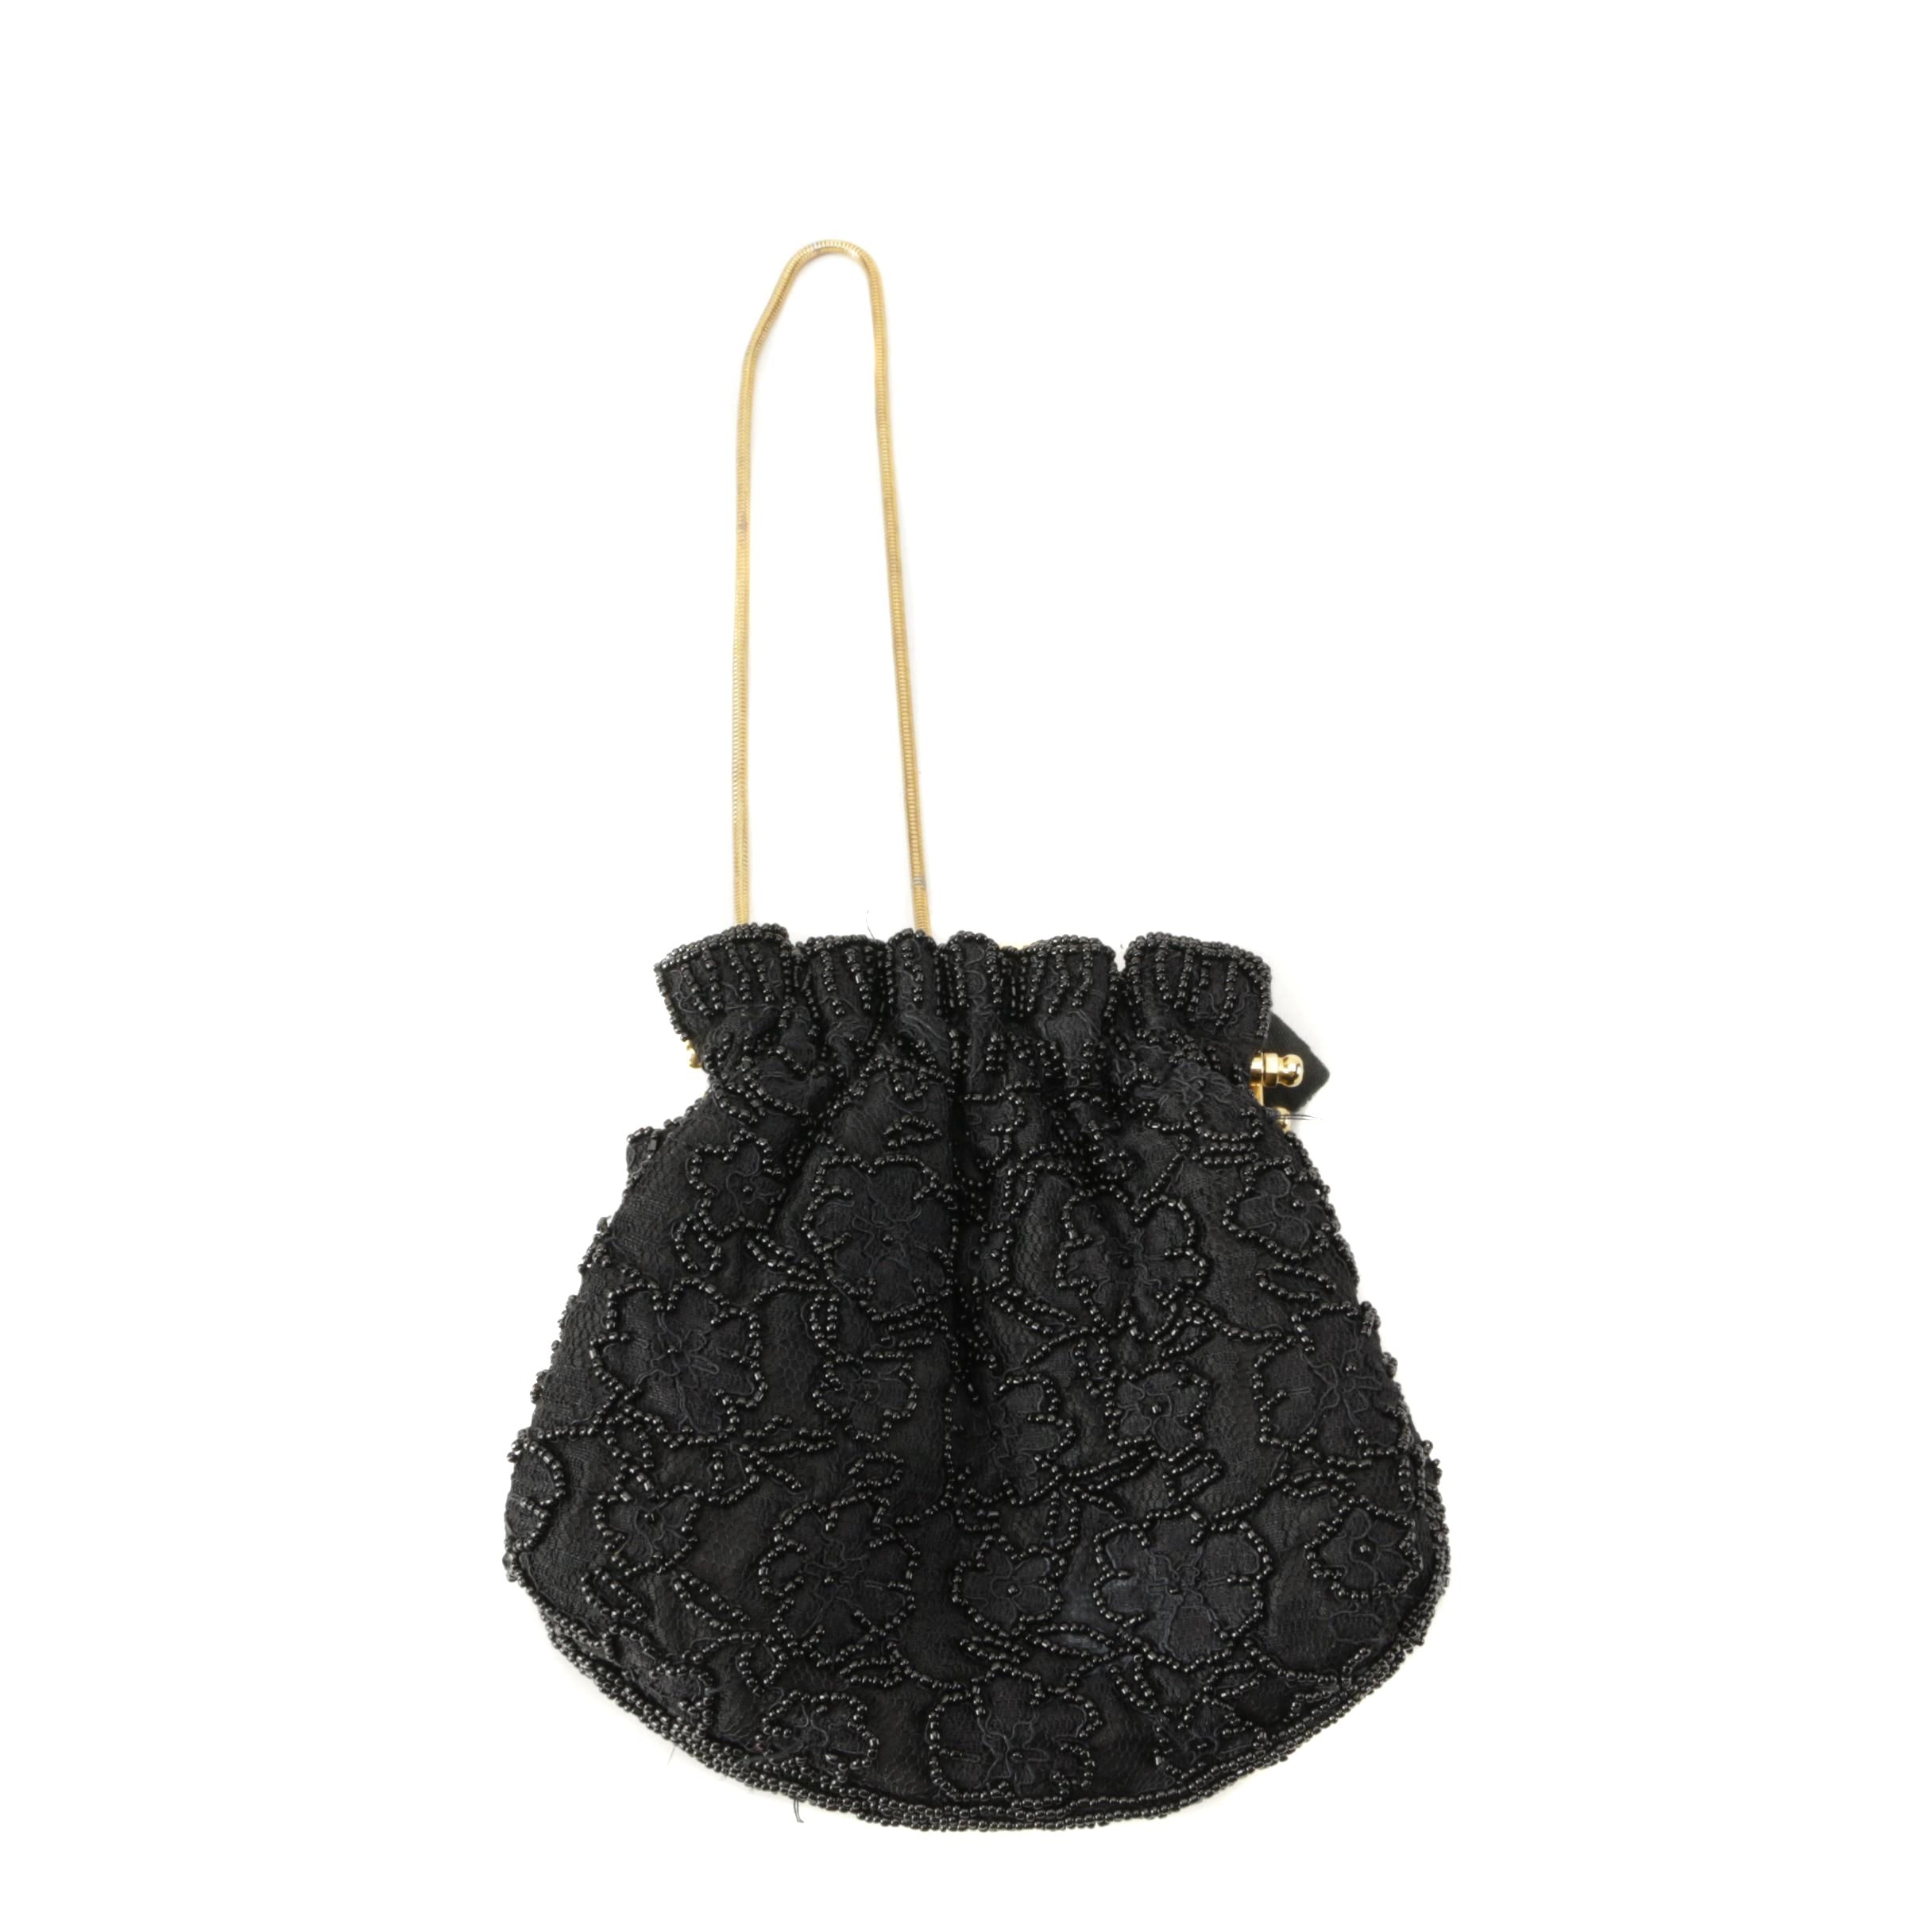 I. Magnin Beaded Black Lace Evening Bag